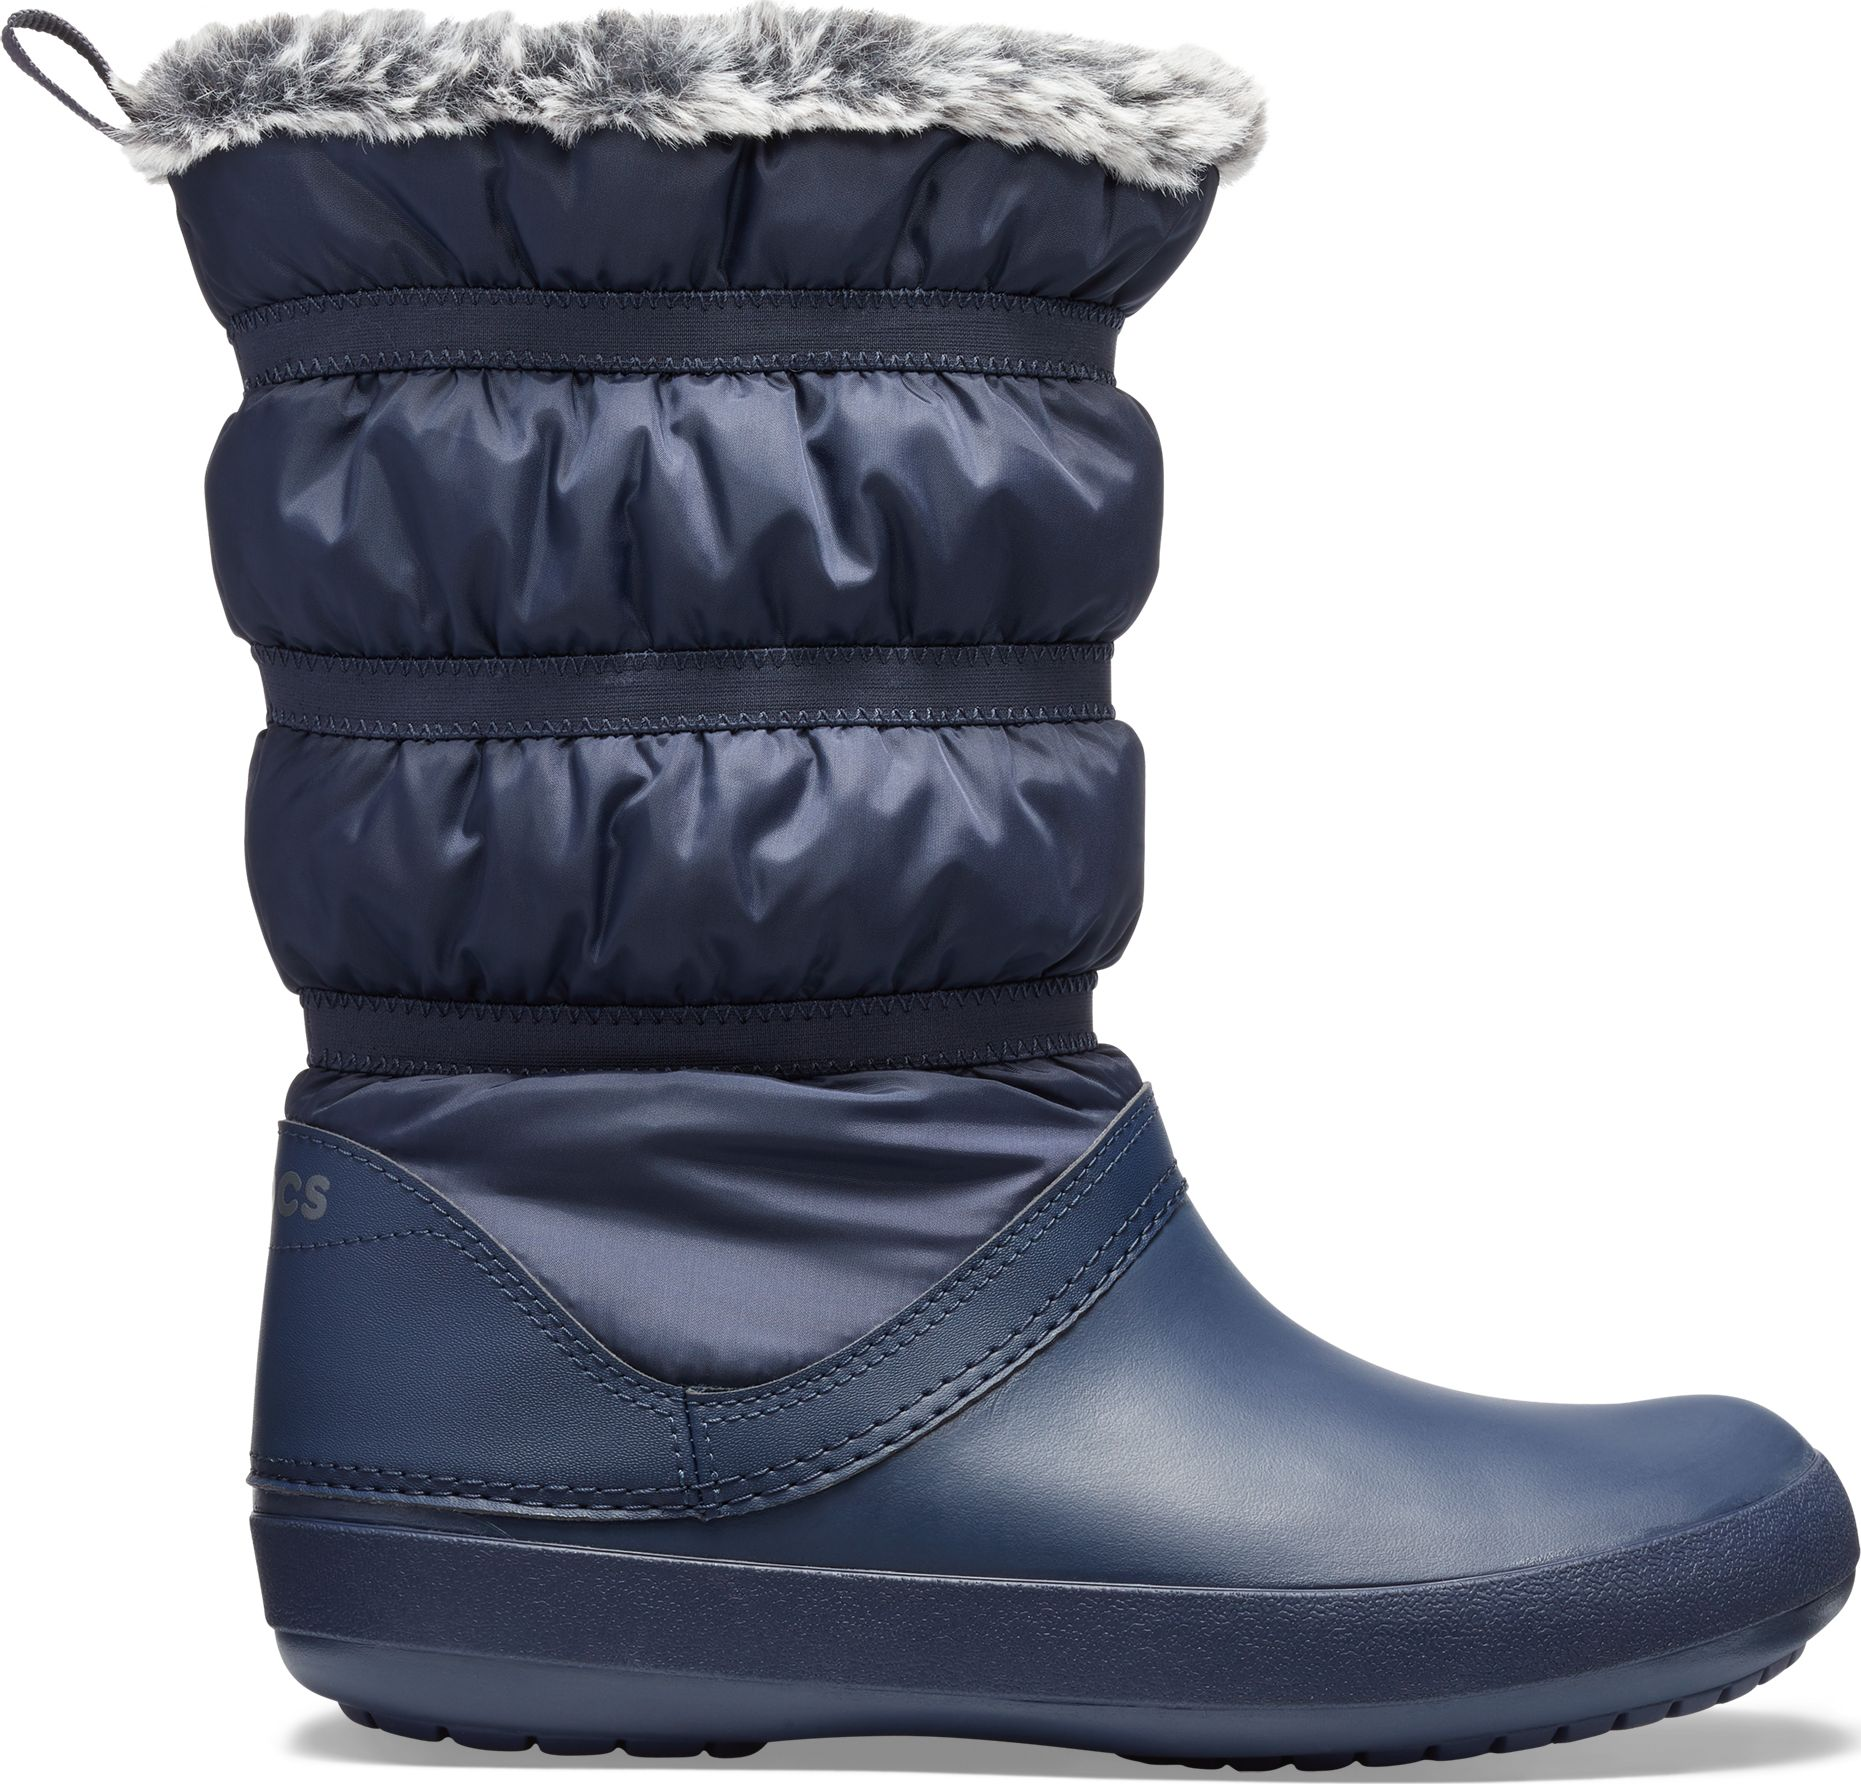 Crocs™ Women's Crocband Winter Boot Navy 38,5